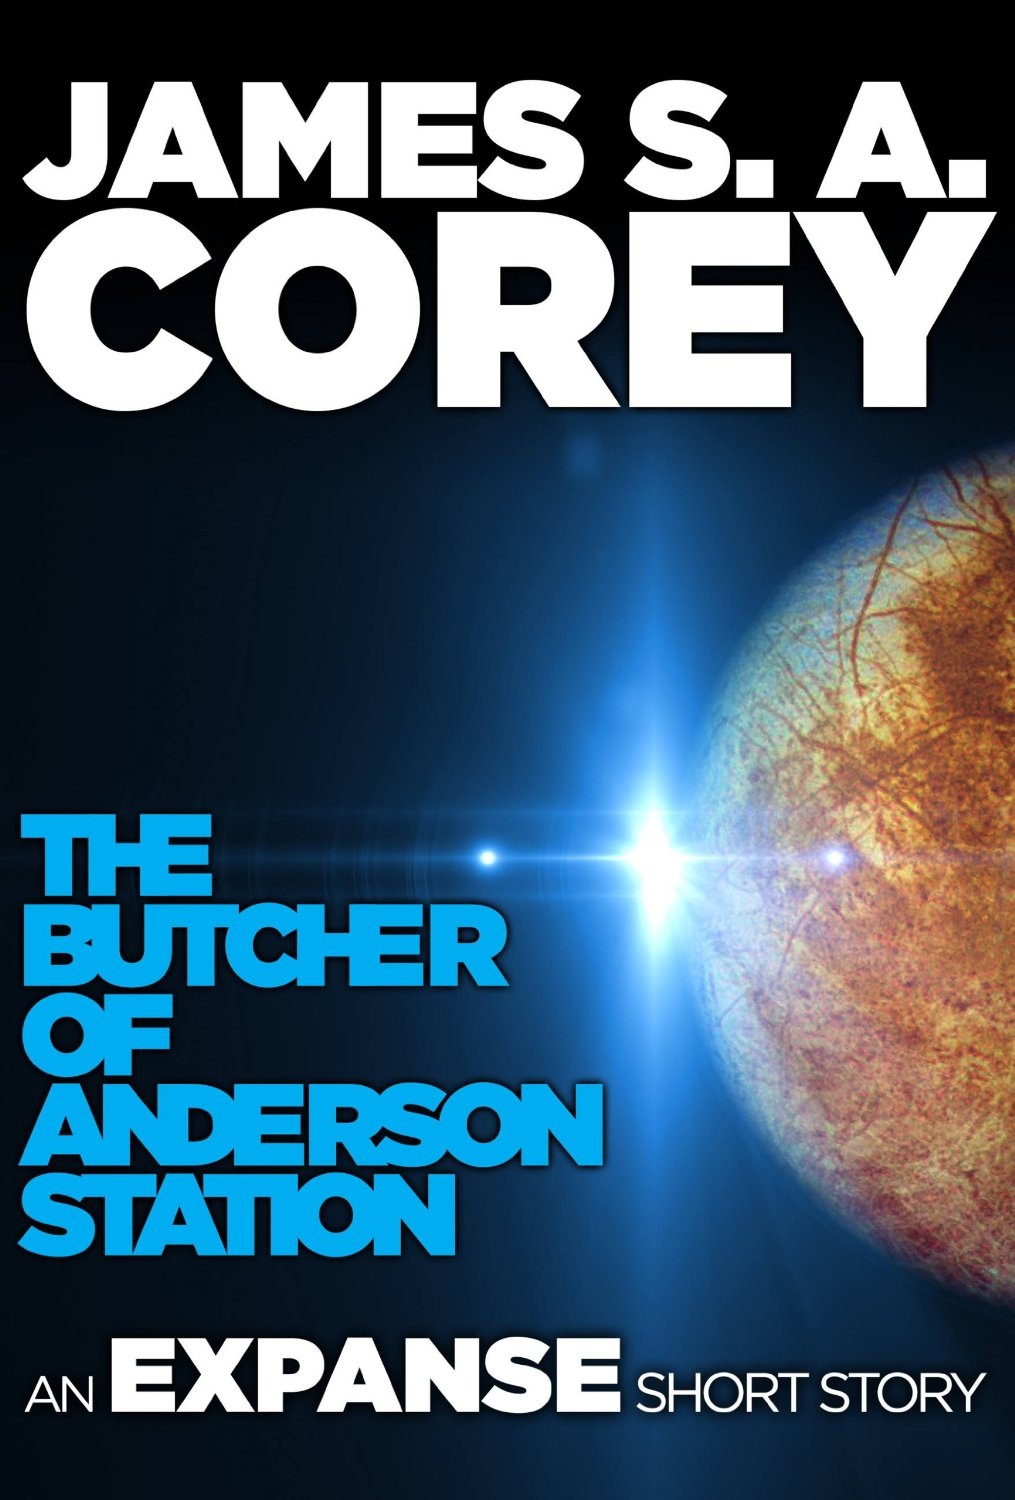 The Butcher Of Anderson Station The Expanse Wiki